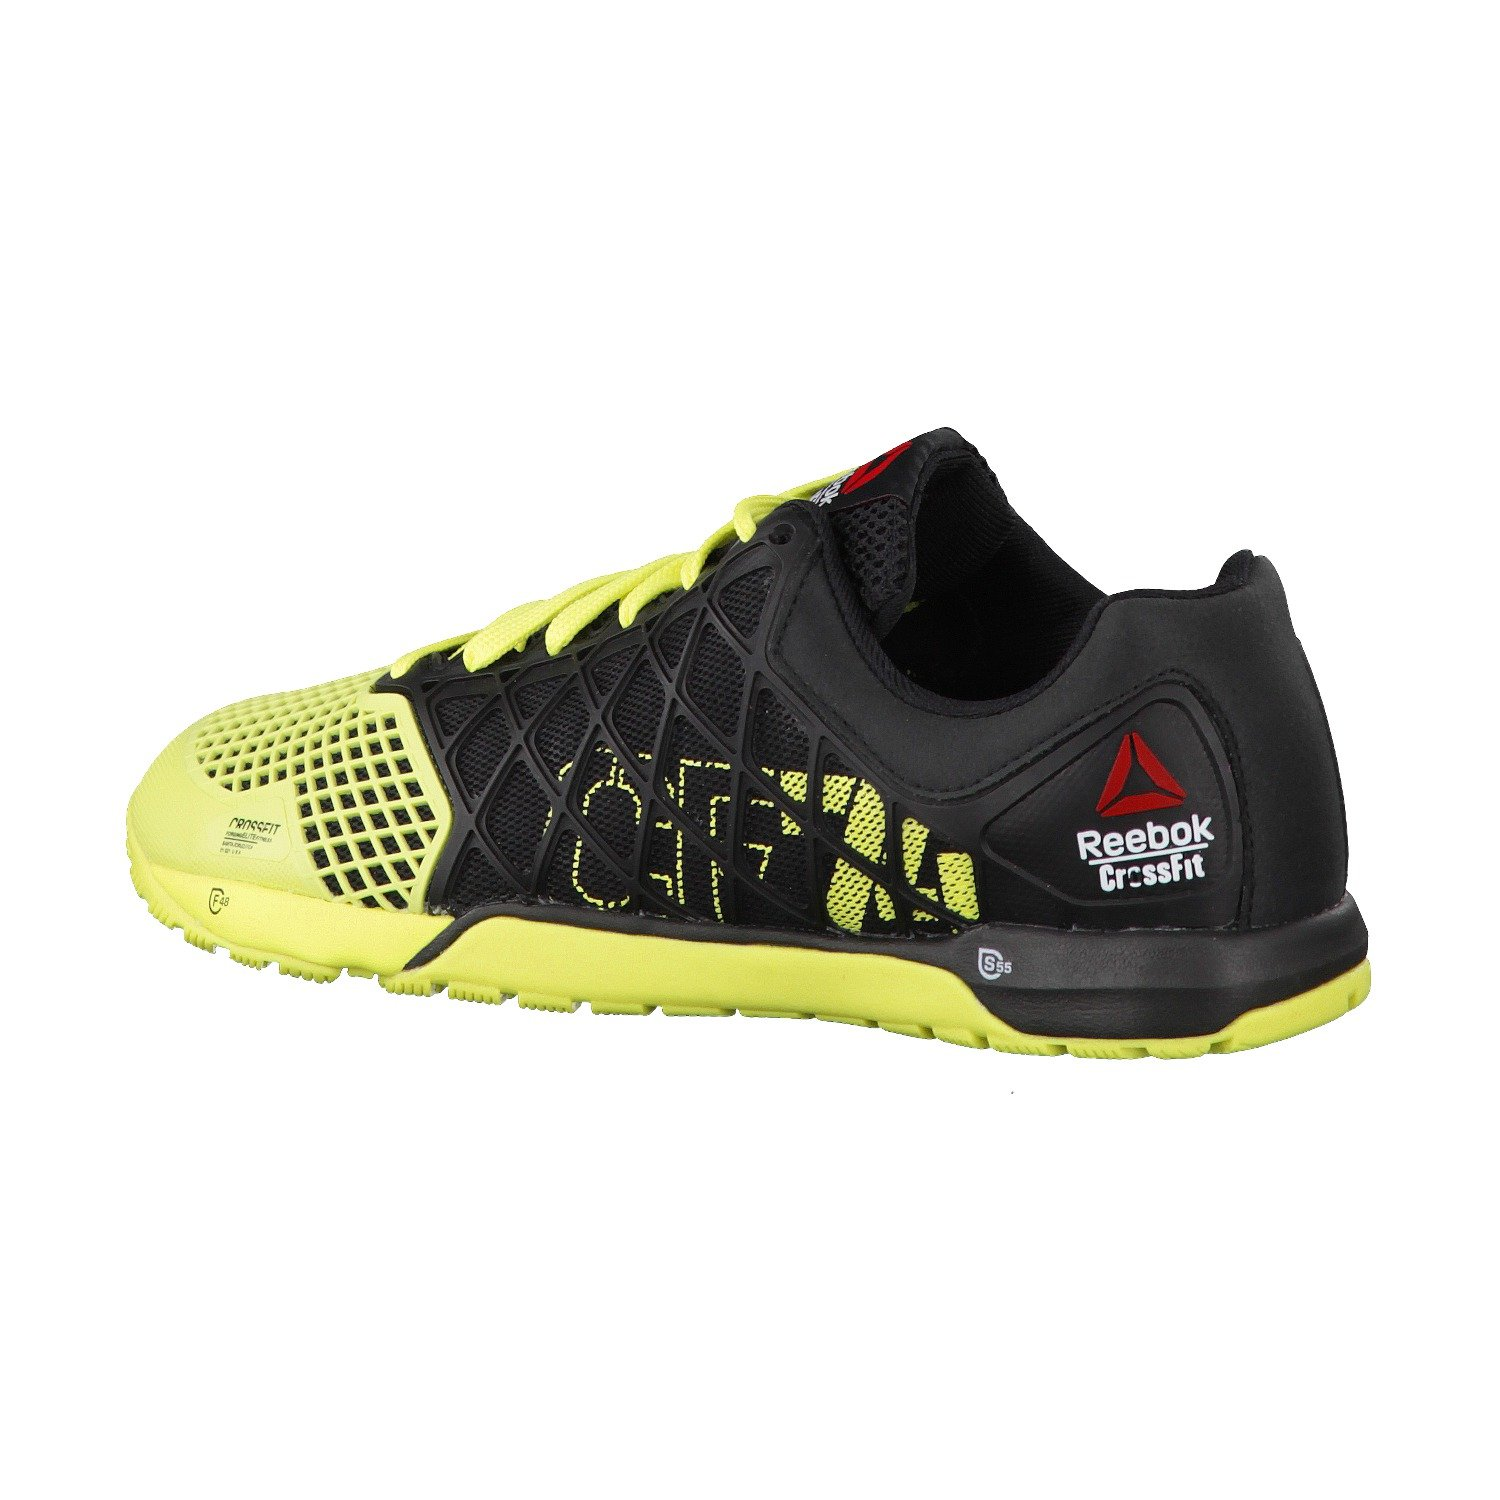 reebok crossfit shoes high top. reebok crossfit nano 4.0, unisex adults\u0027 trainers, black (nero / giallo), 13 uk (48.5 eu): amazon.co.uk: shoes \u0026 bags high top .